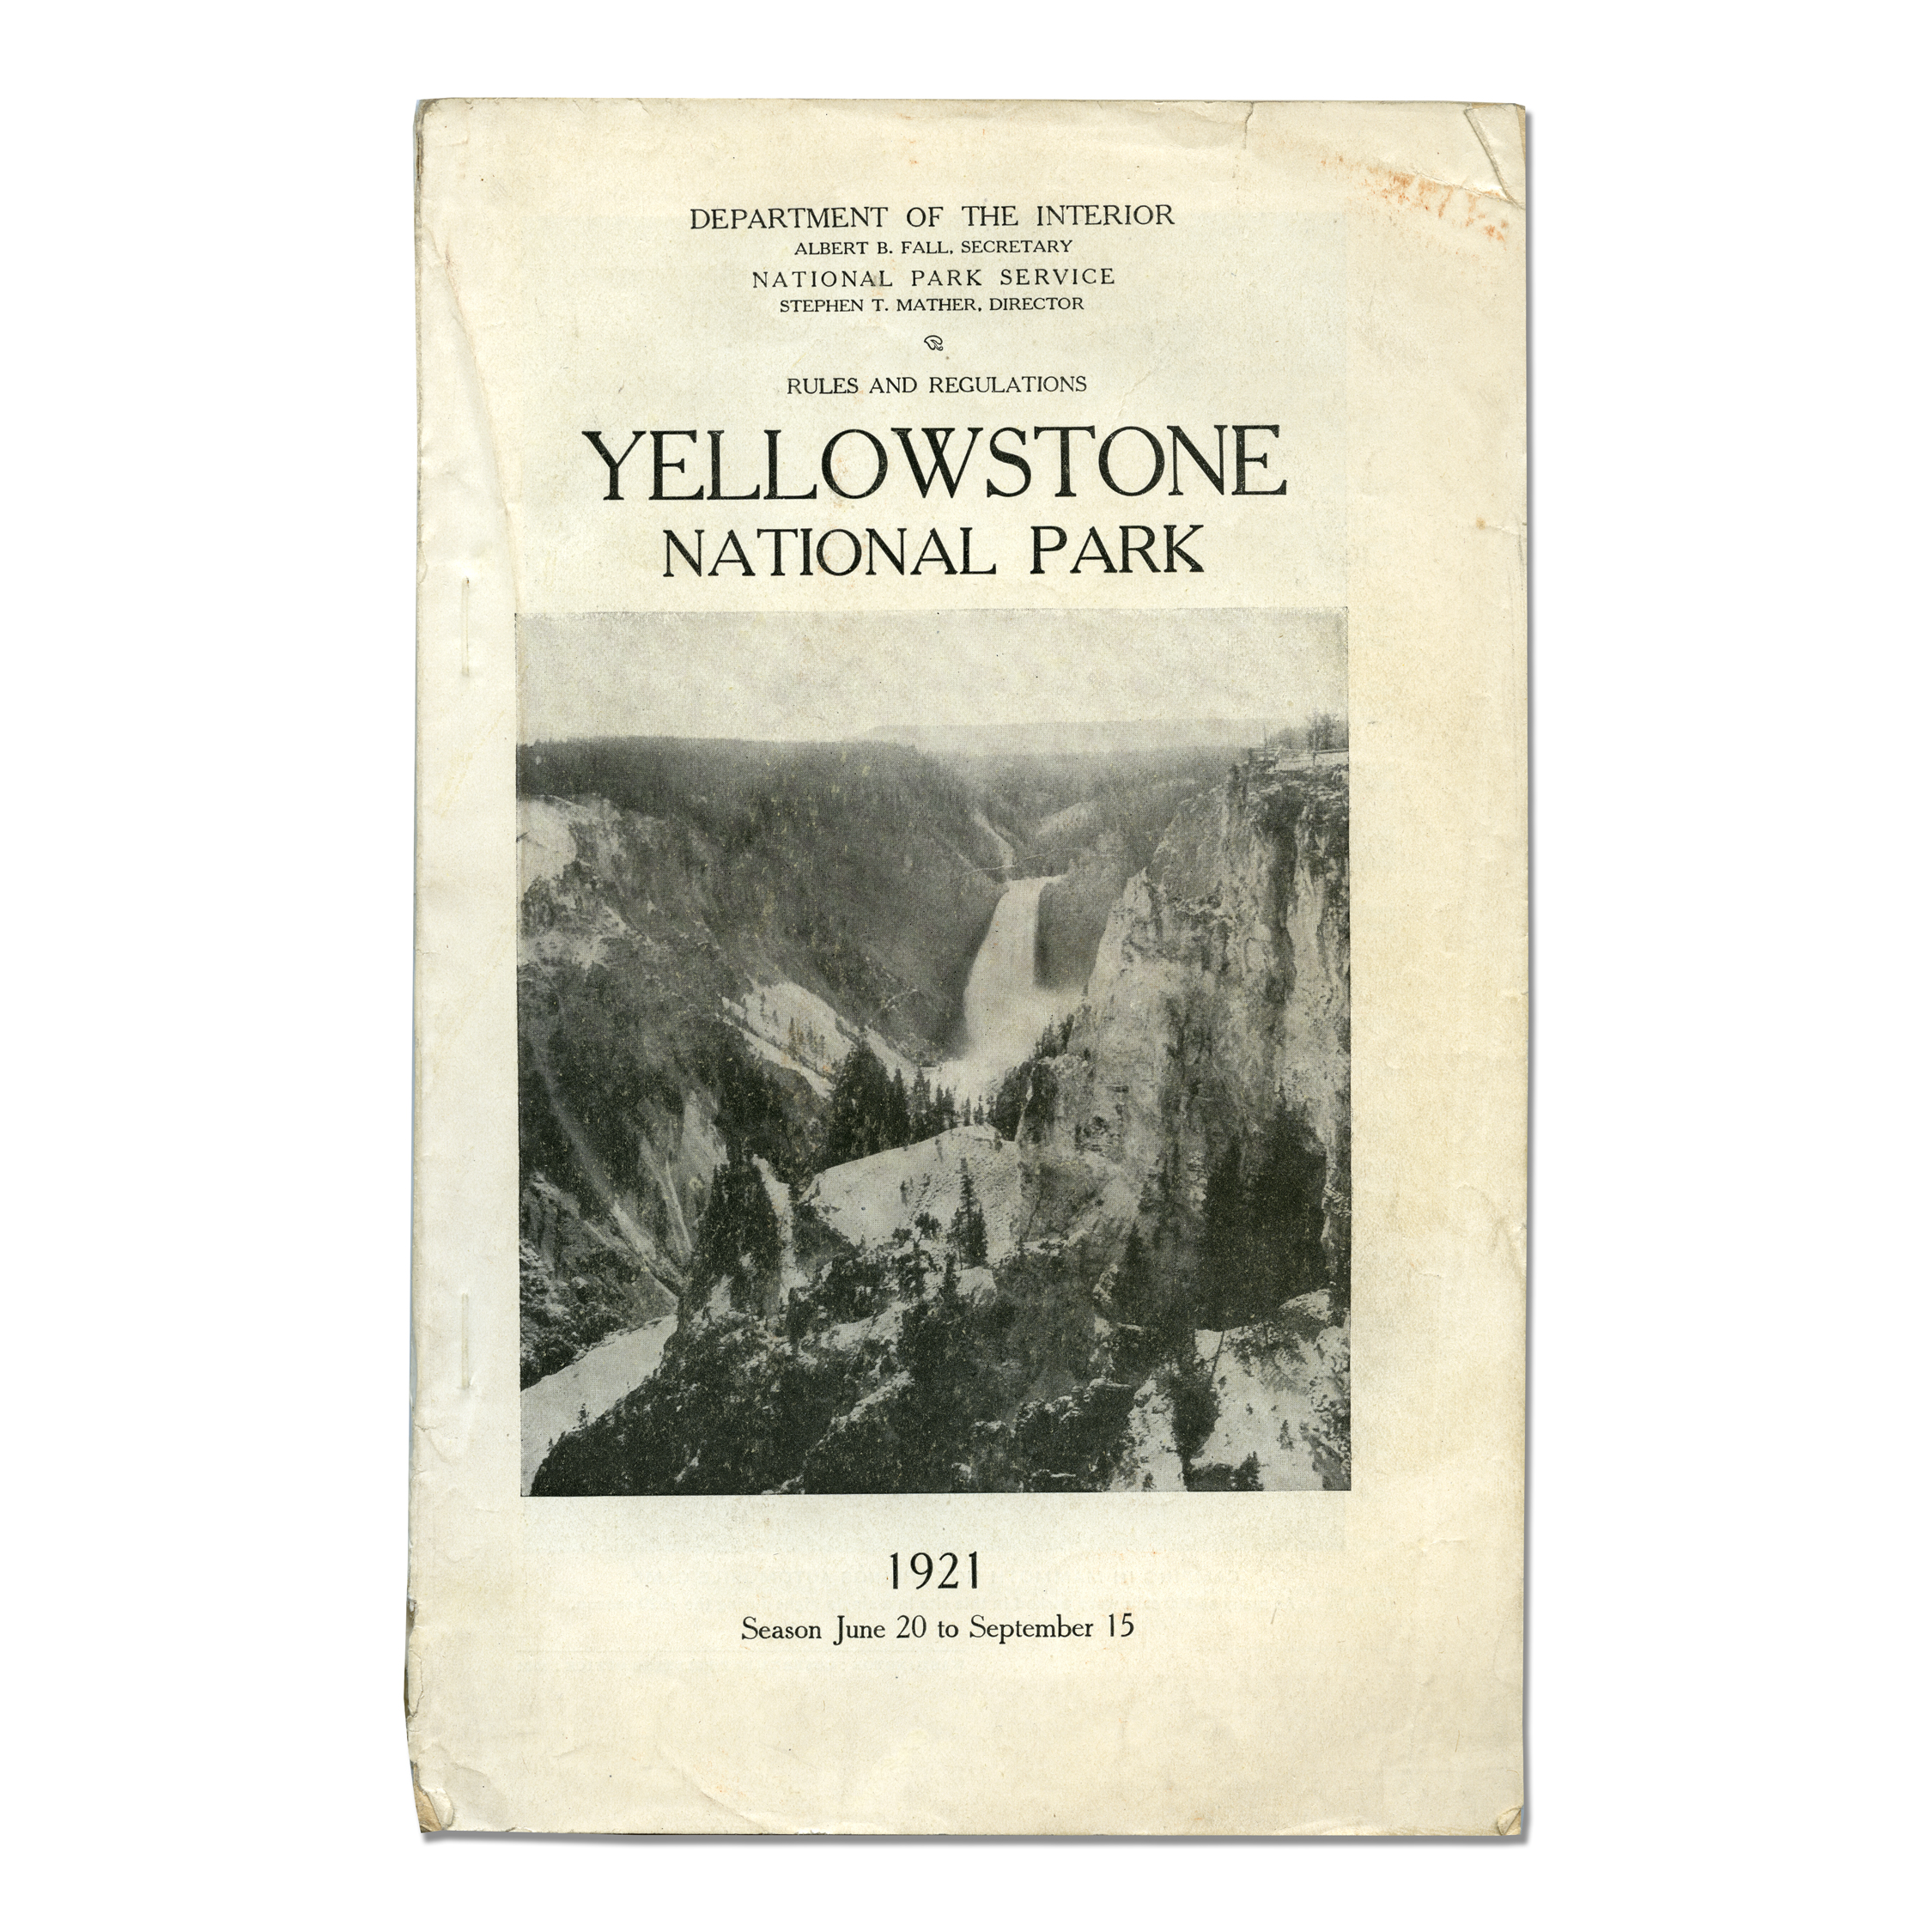 1921_yellowstone_national_park_rules_and_regulations_brochure.jpg